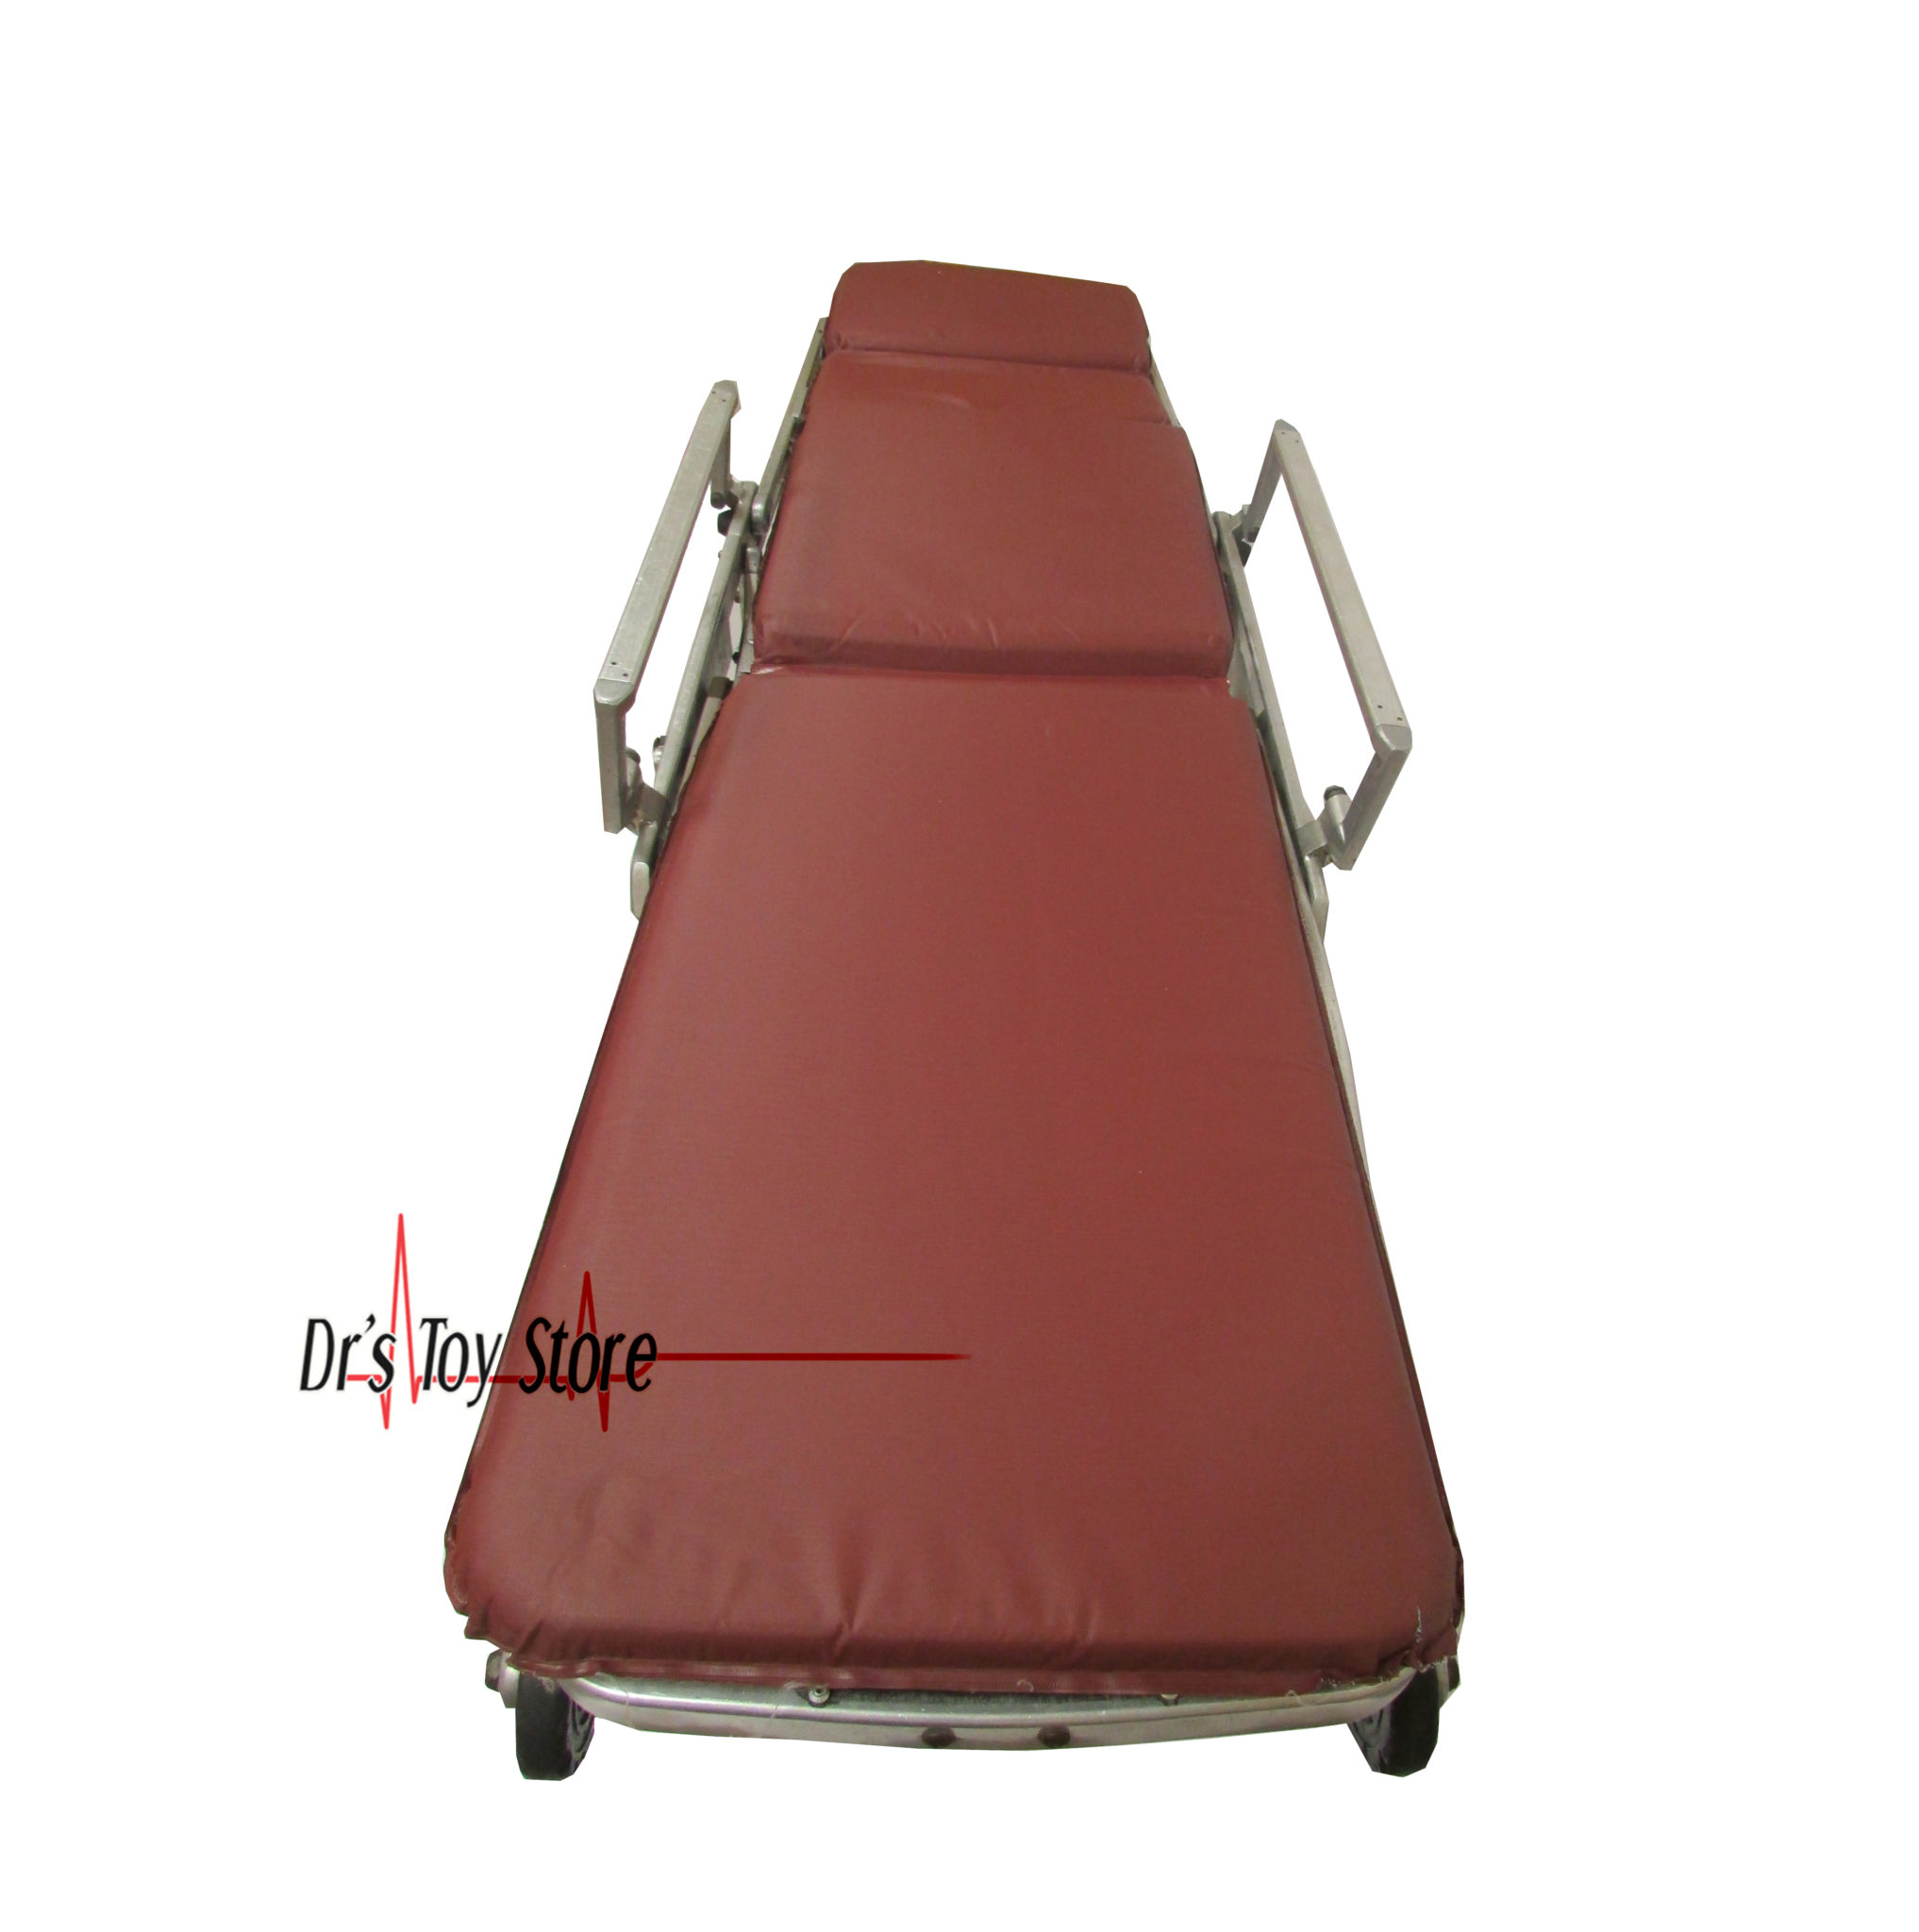 Collapsible Chair Ferno Washington Collapsible Stretcher Chair For Sale At